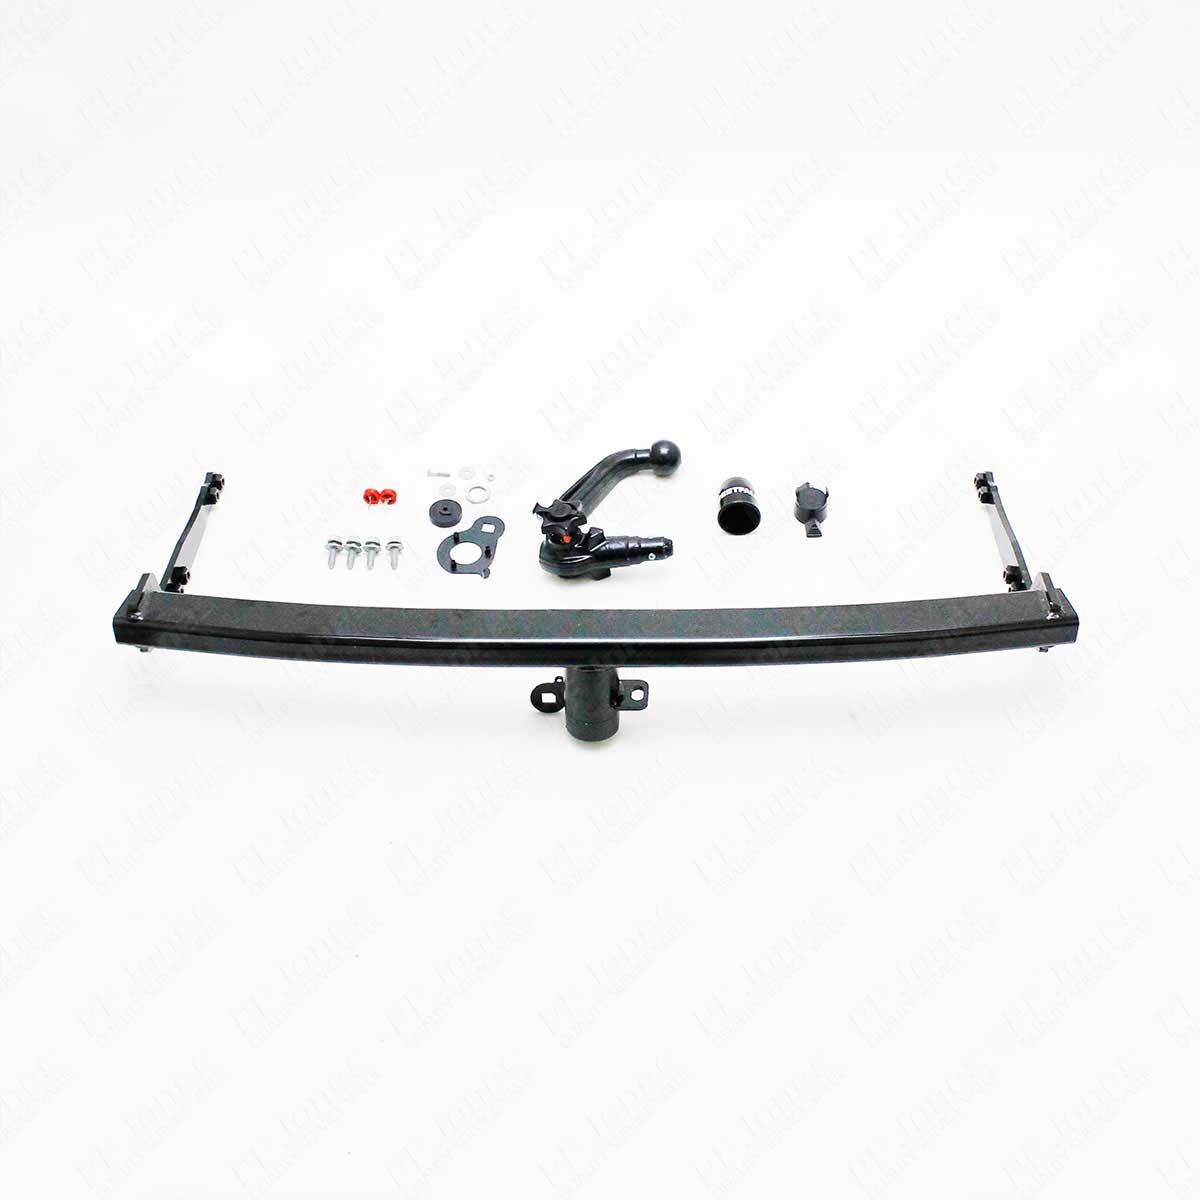 hight resolution of skoda octavia estate 2013 onwards westfalia detachable towbar